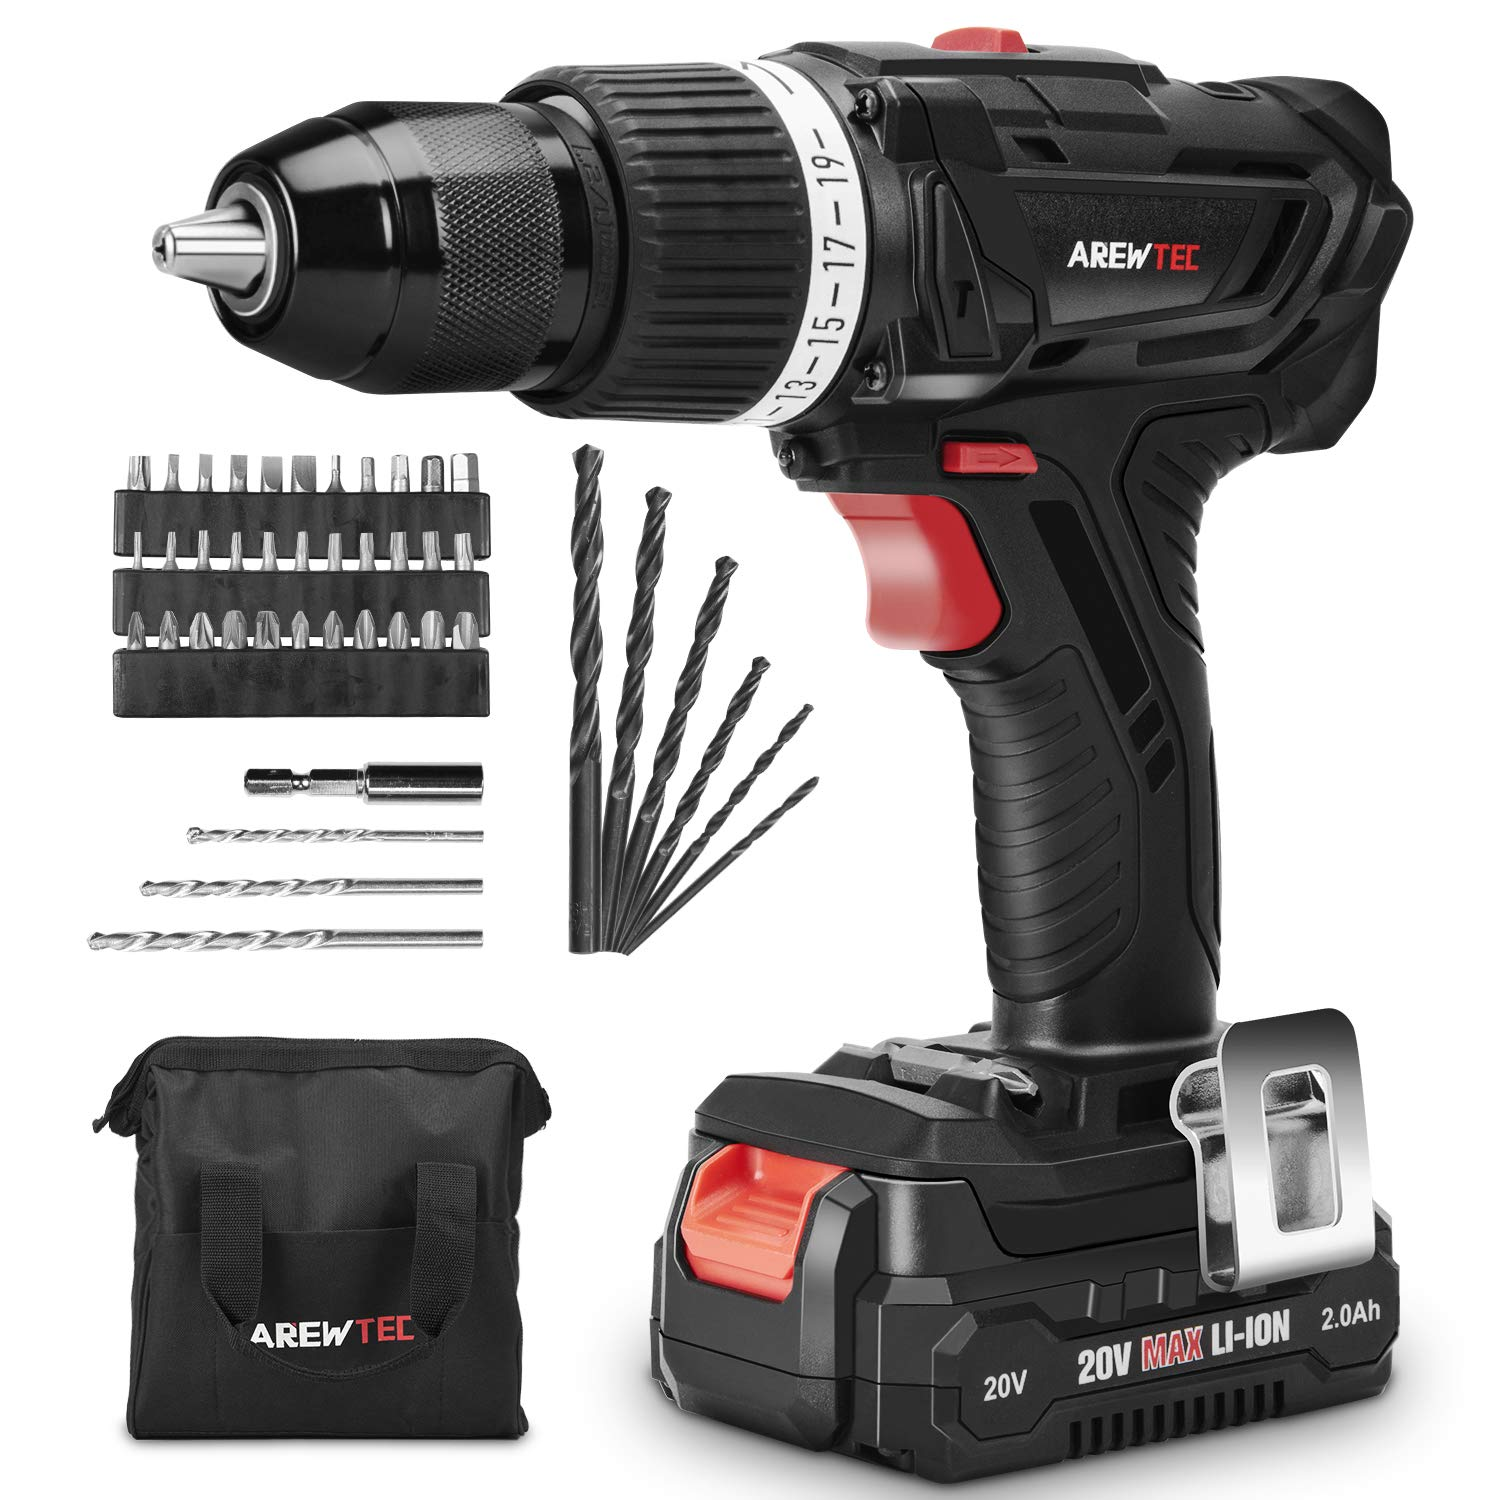 AREWTEC Cordless Hammer Drill, 20V Drill Driver Set 2.0Ah Lithium-Ion Battery 45NM 398 In-lbs with 2 Speed,1/2'' KEYLESS METALLIC CHUCK,19+2 Torque Adjustment,1 Hour Fast Charger,45 Accessories